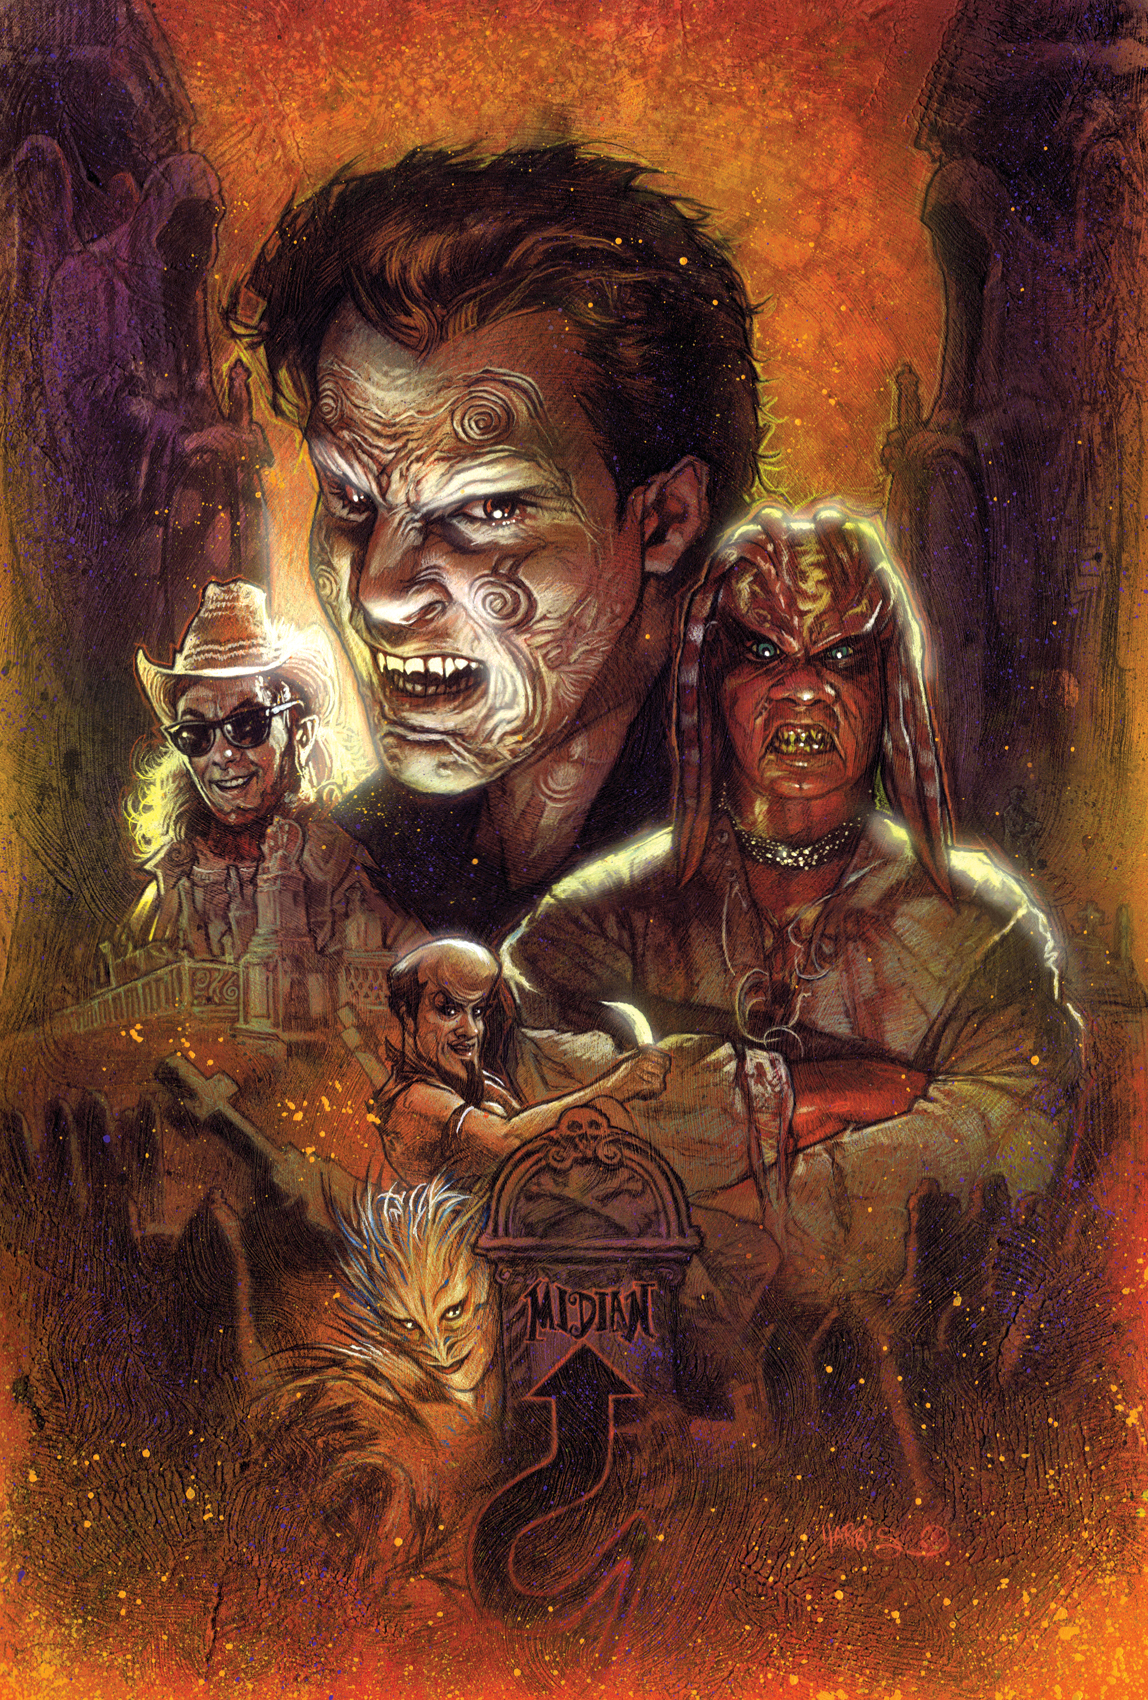 CLIVE BARKER'S NIGHTBREED #1 Phoenix Comicon Exclusive Cover by Tony Harris